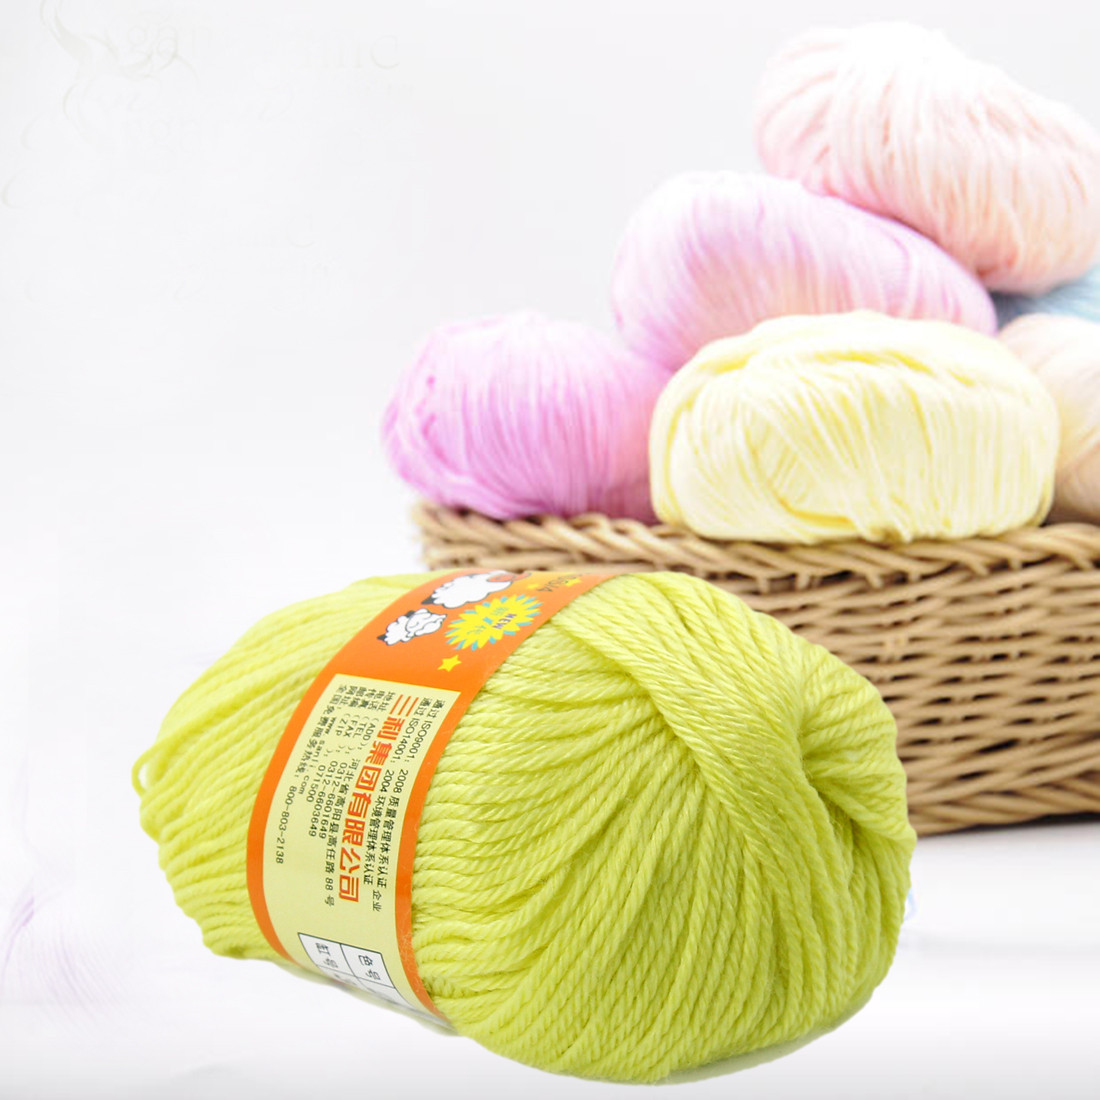 Cheap Yarn New New 1pc 50g Cotton Knitting Yarn Crochet Yarn for Knitting Of Amazing 40 Pics Cheap Yarn